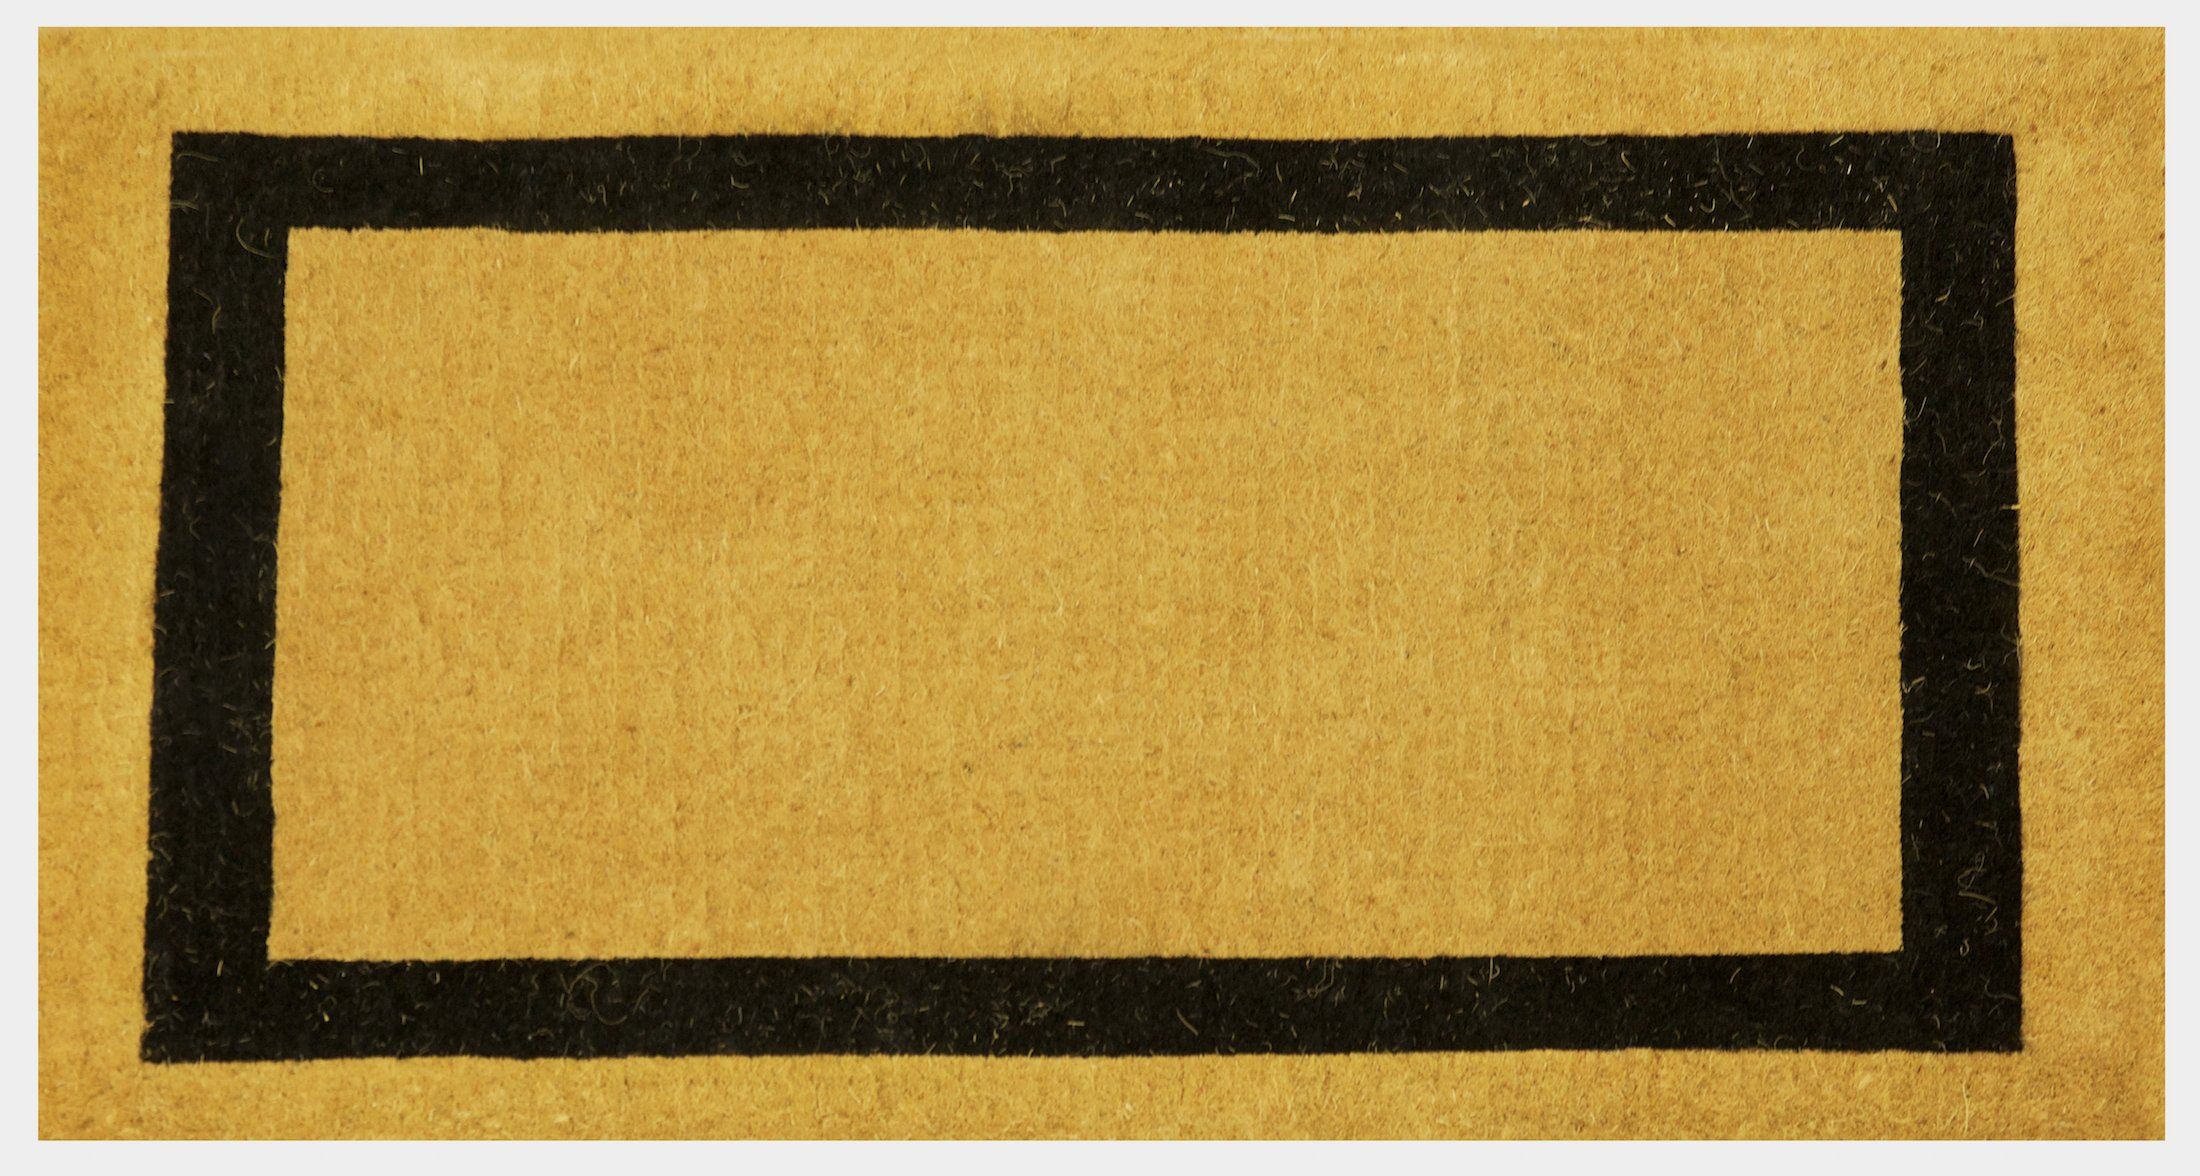 Extra Thick Handwoven Classic Black Border Large Coco Coir Welcome Doormat , Various Sizes (36 x 60 Inches)